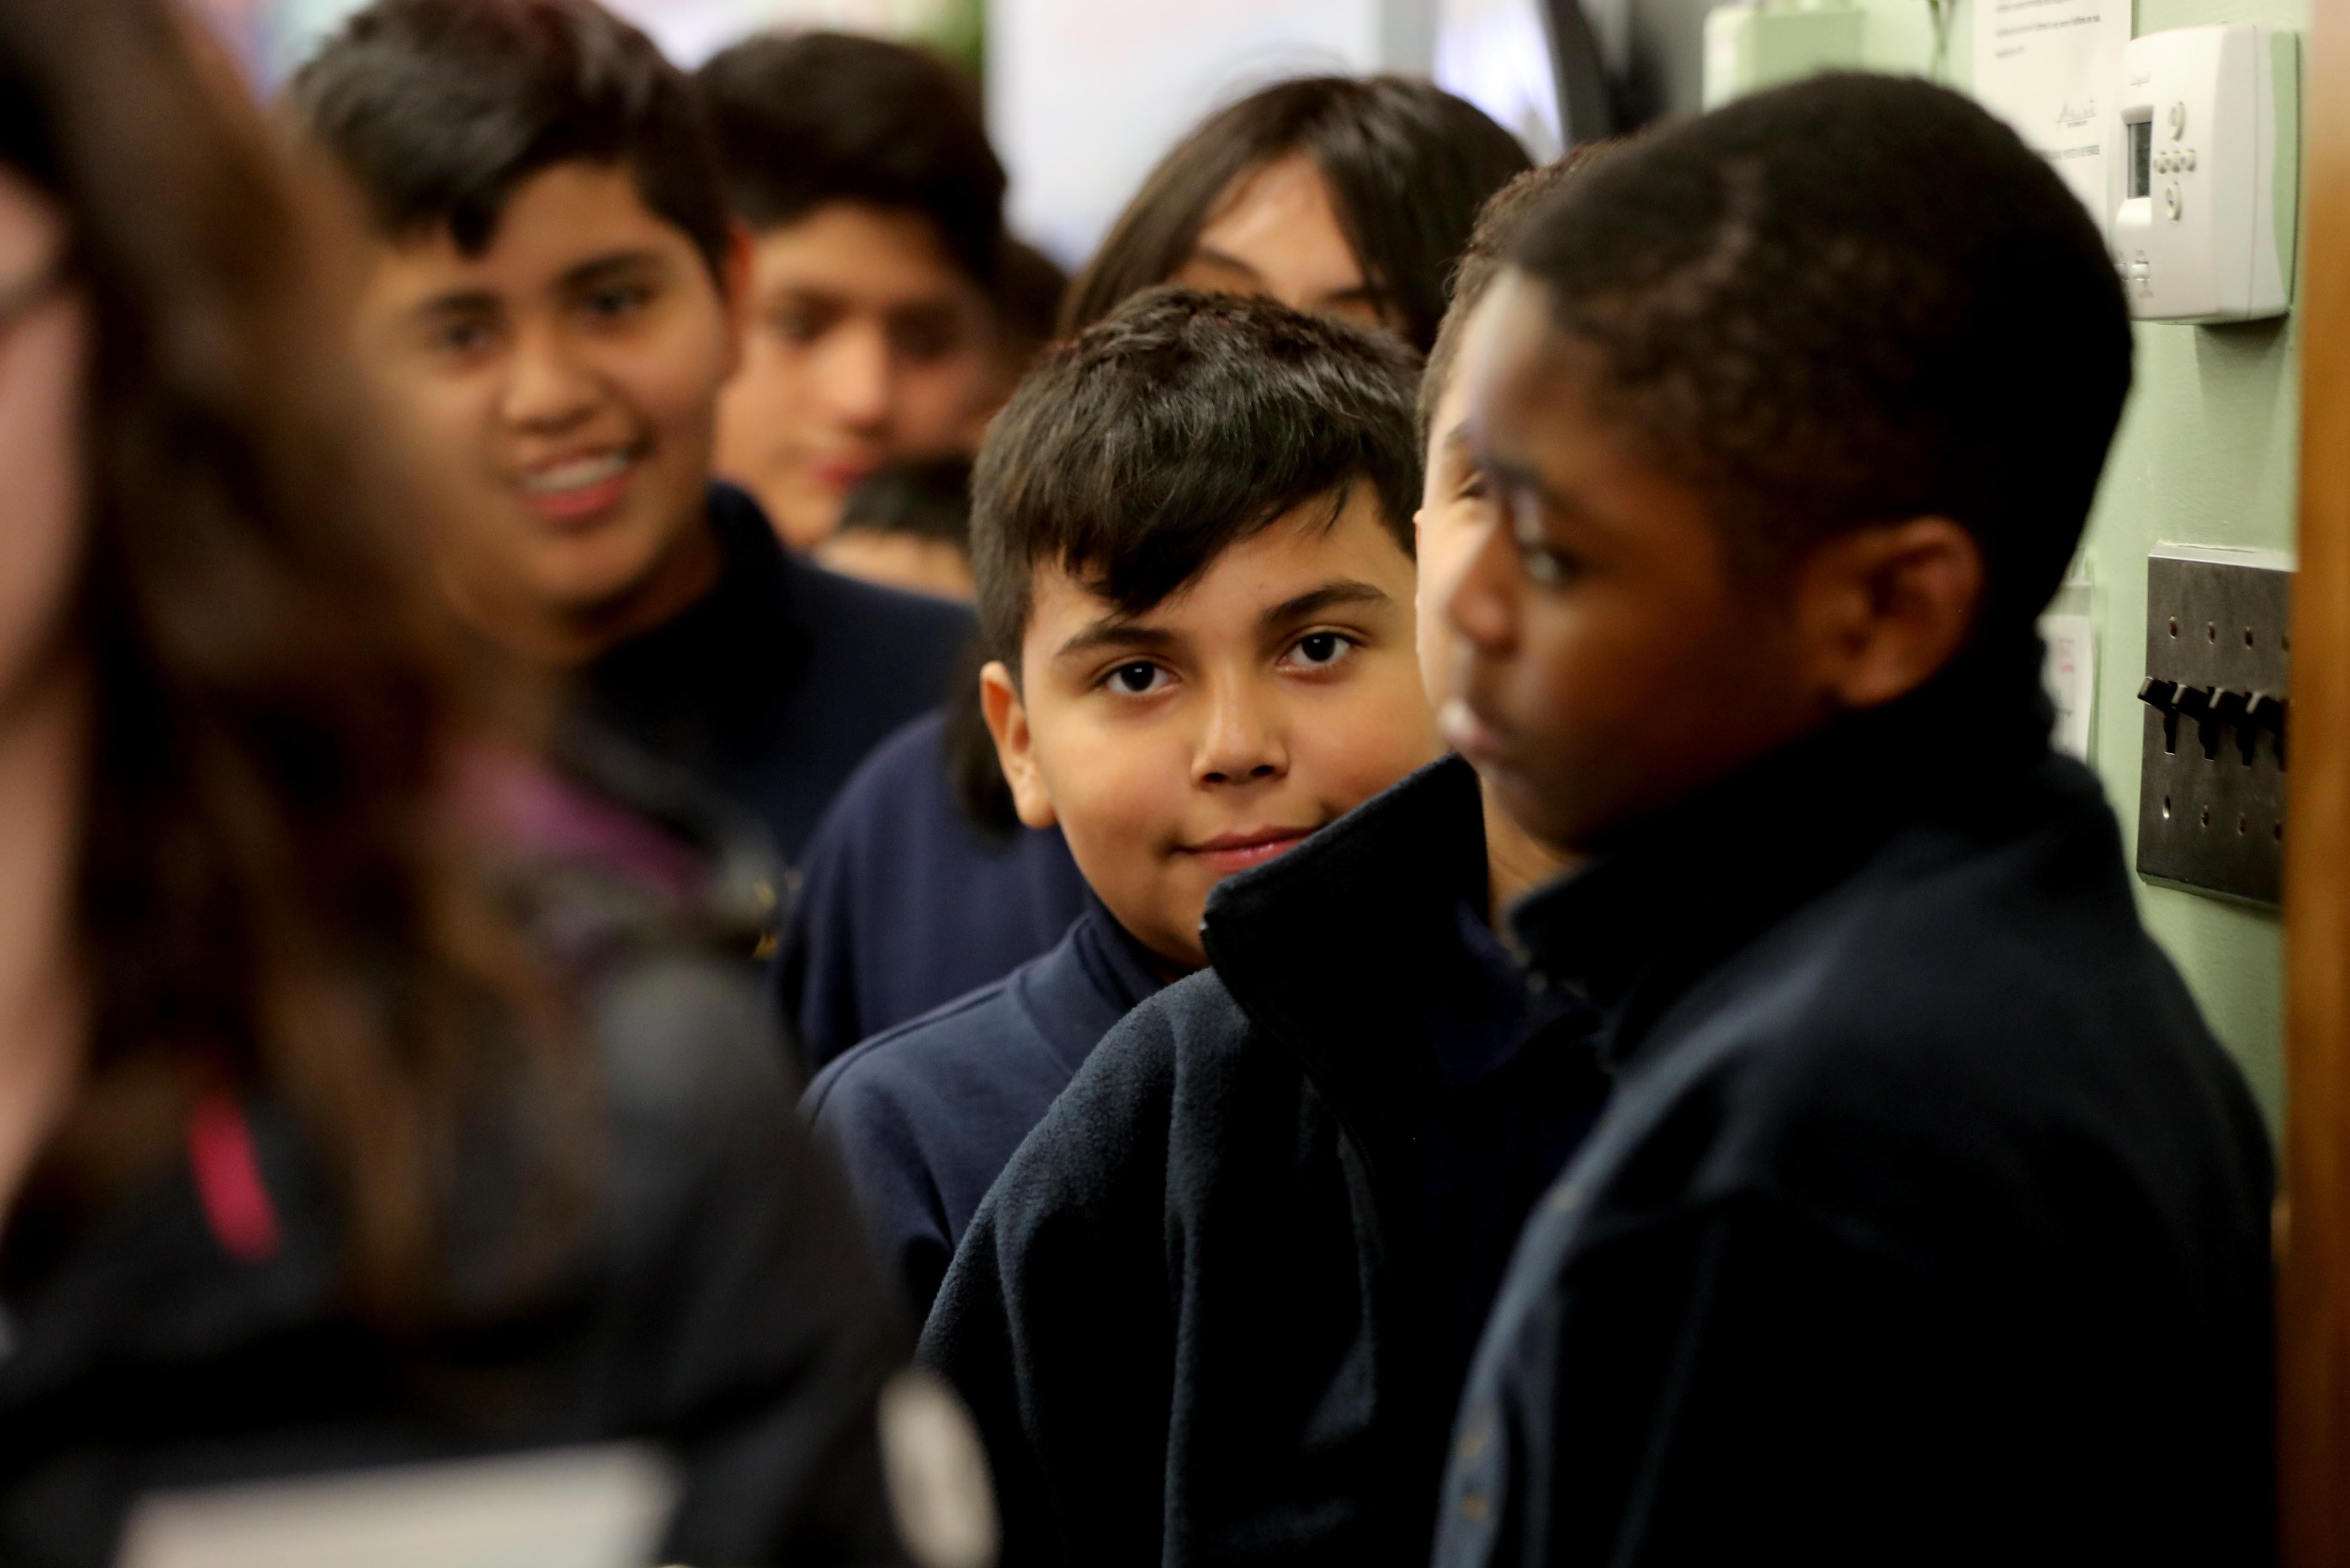 Wealthy Chappaqua Catholics start school for poor boys at the urging of their priest